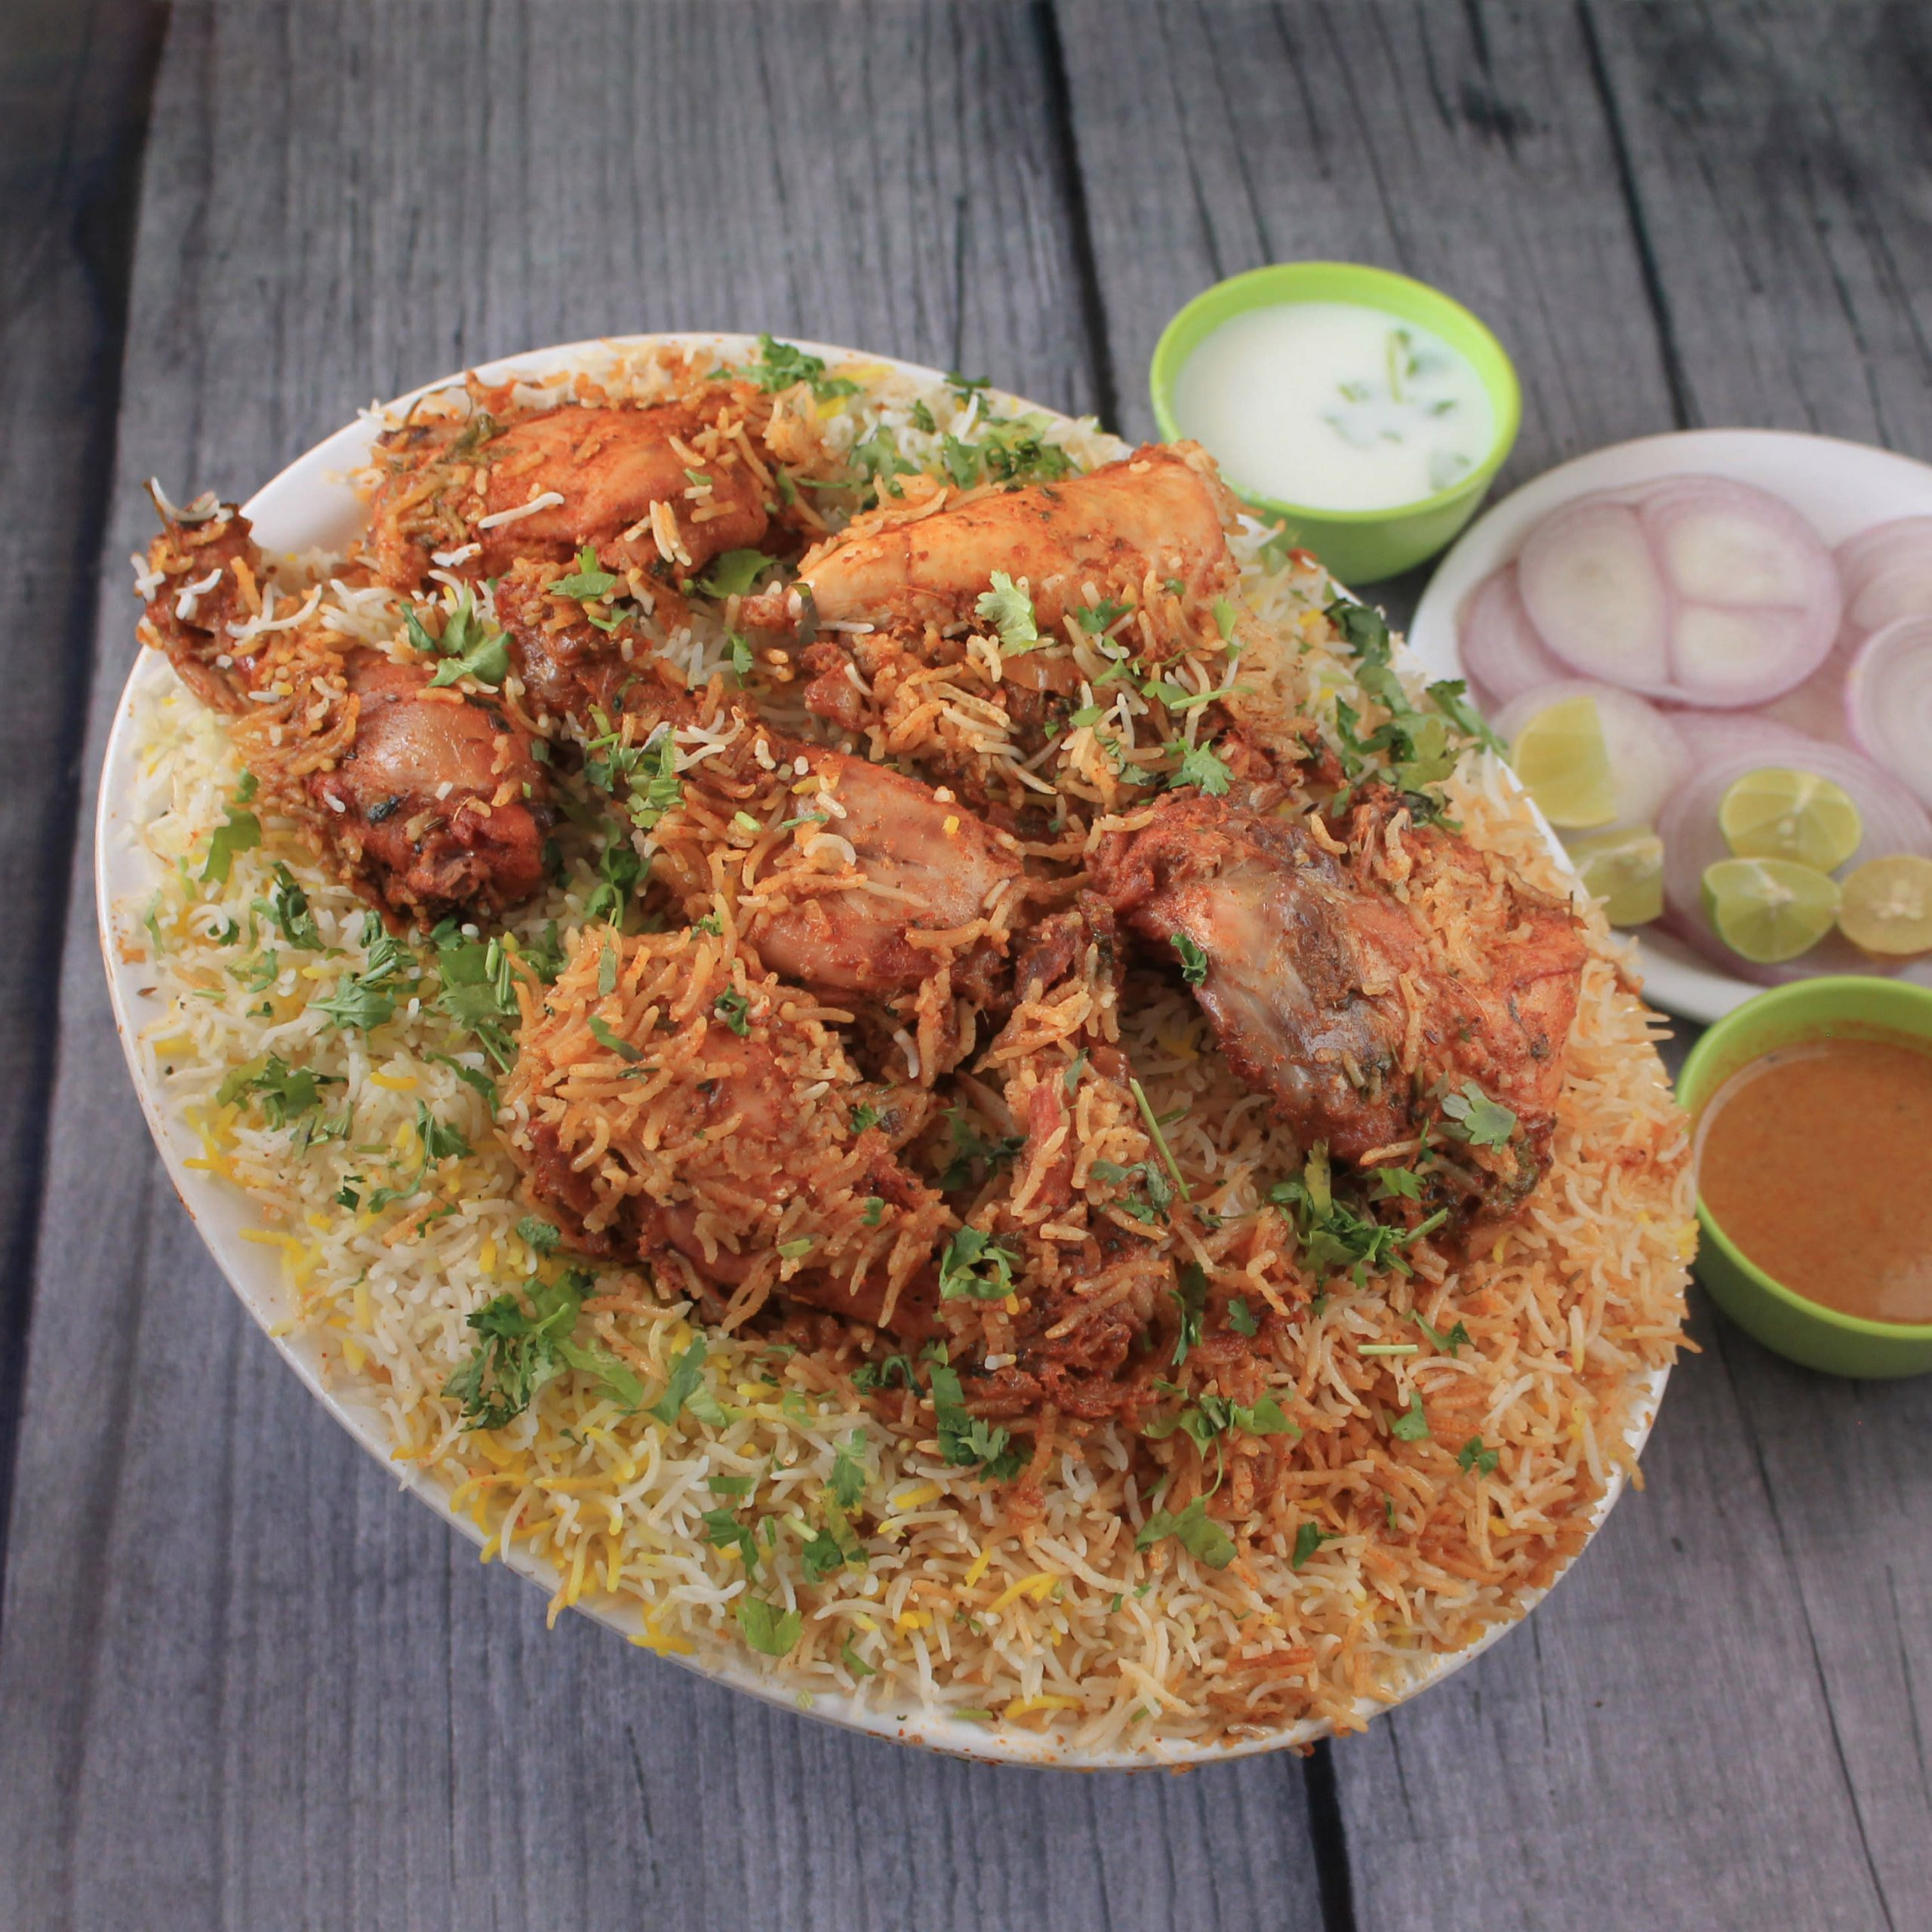 Best Place To Eat Near Qutub Shahi Tombs - Green Bawarchi Restaurant